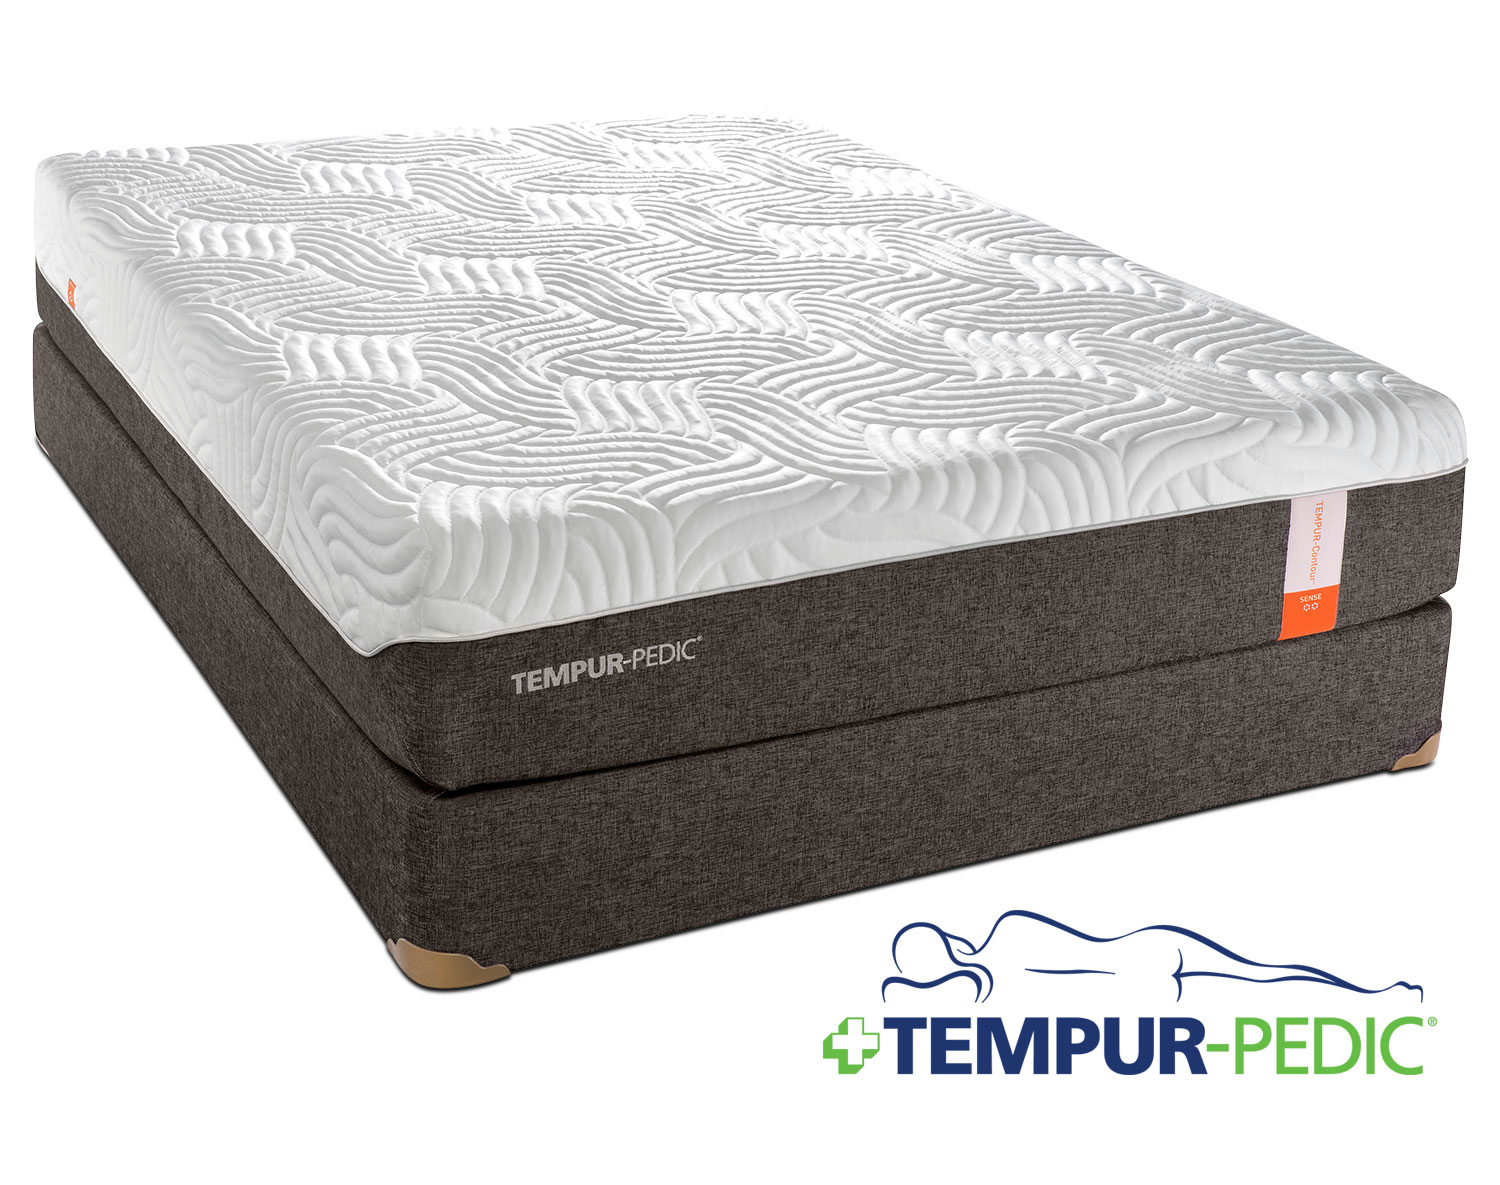 The Tempur-Pedic Sense Collection